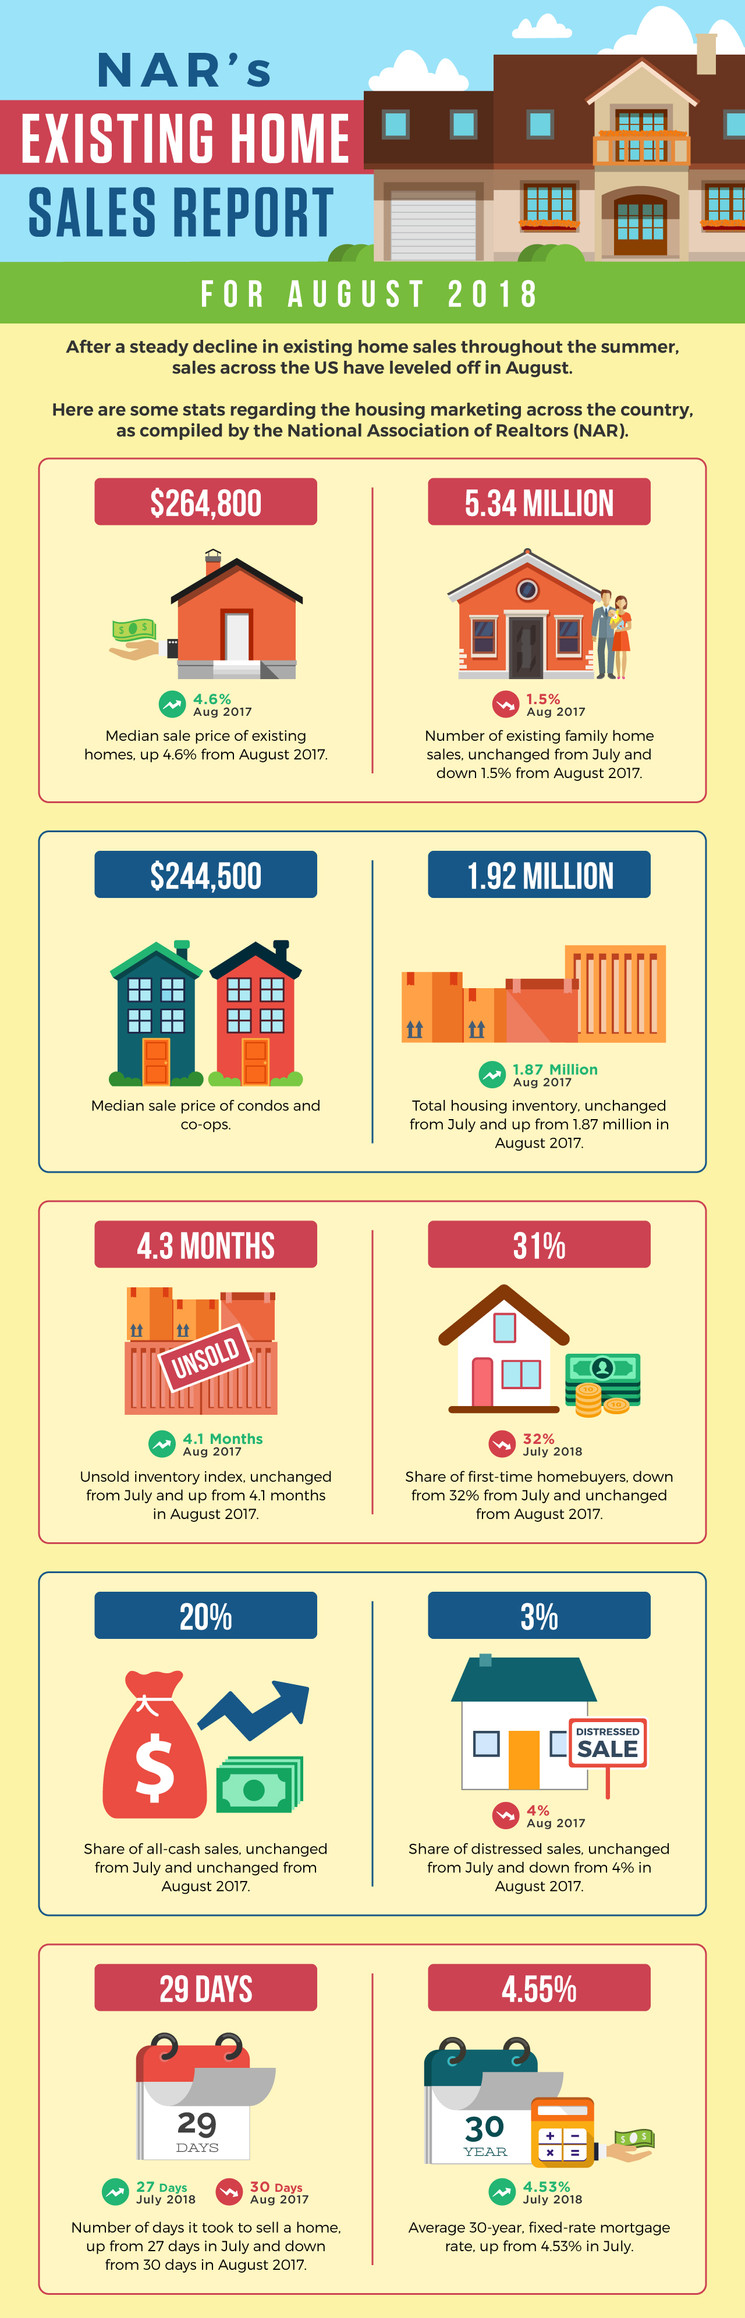 NAR's Existing Home Sales Report for August 2018